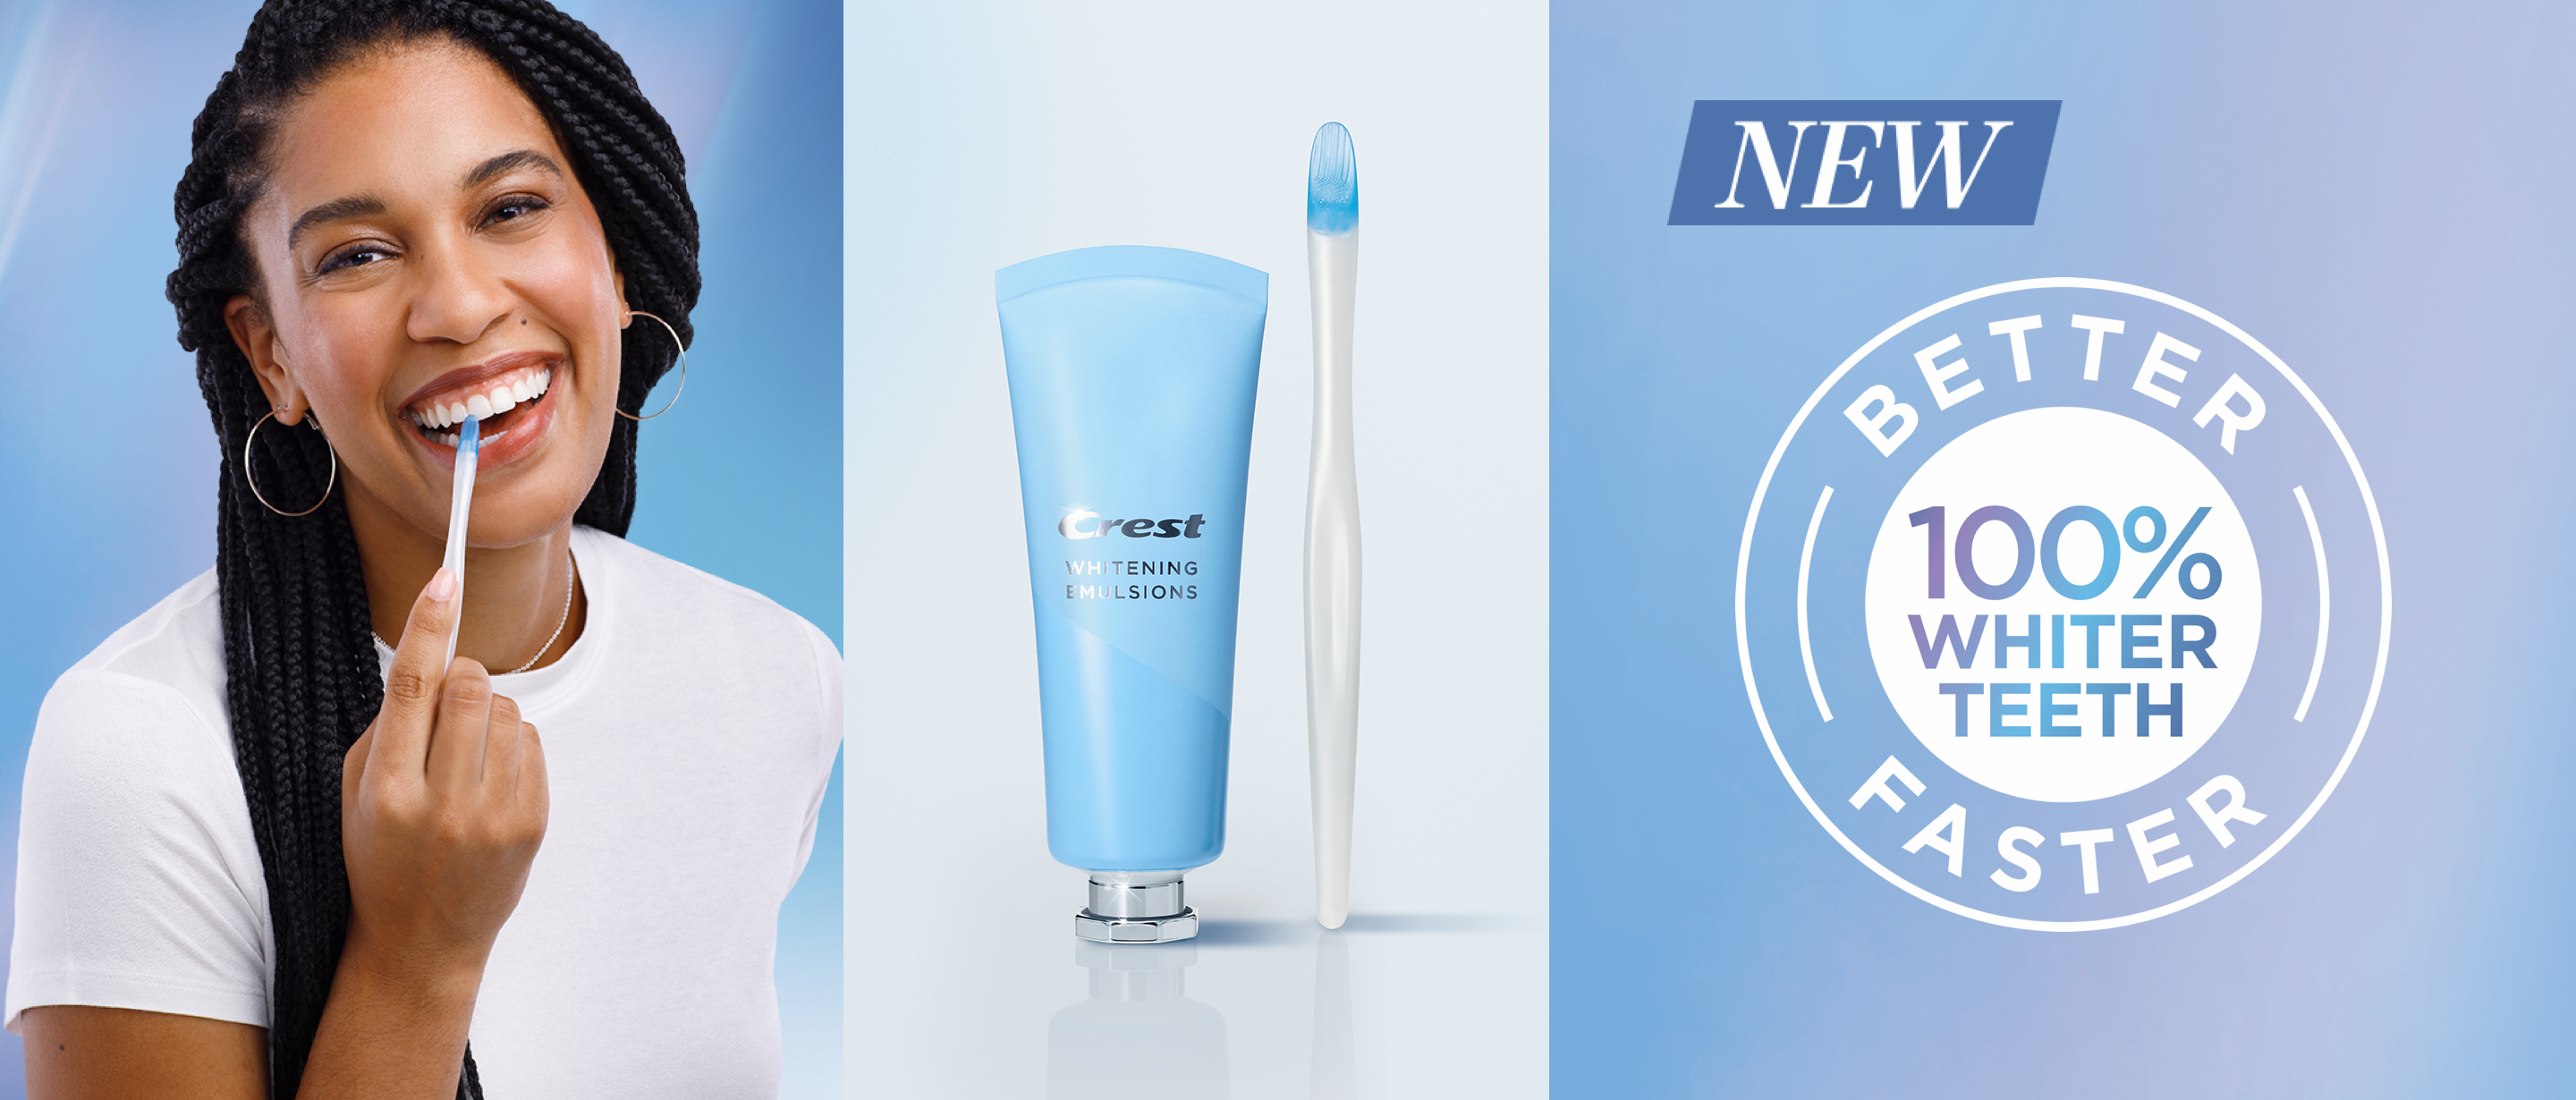 100% Whiter Teeth with Crest Teeth Whitening Emulsions with wand applicator